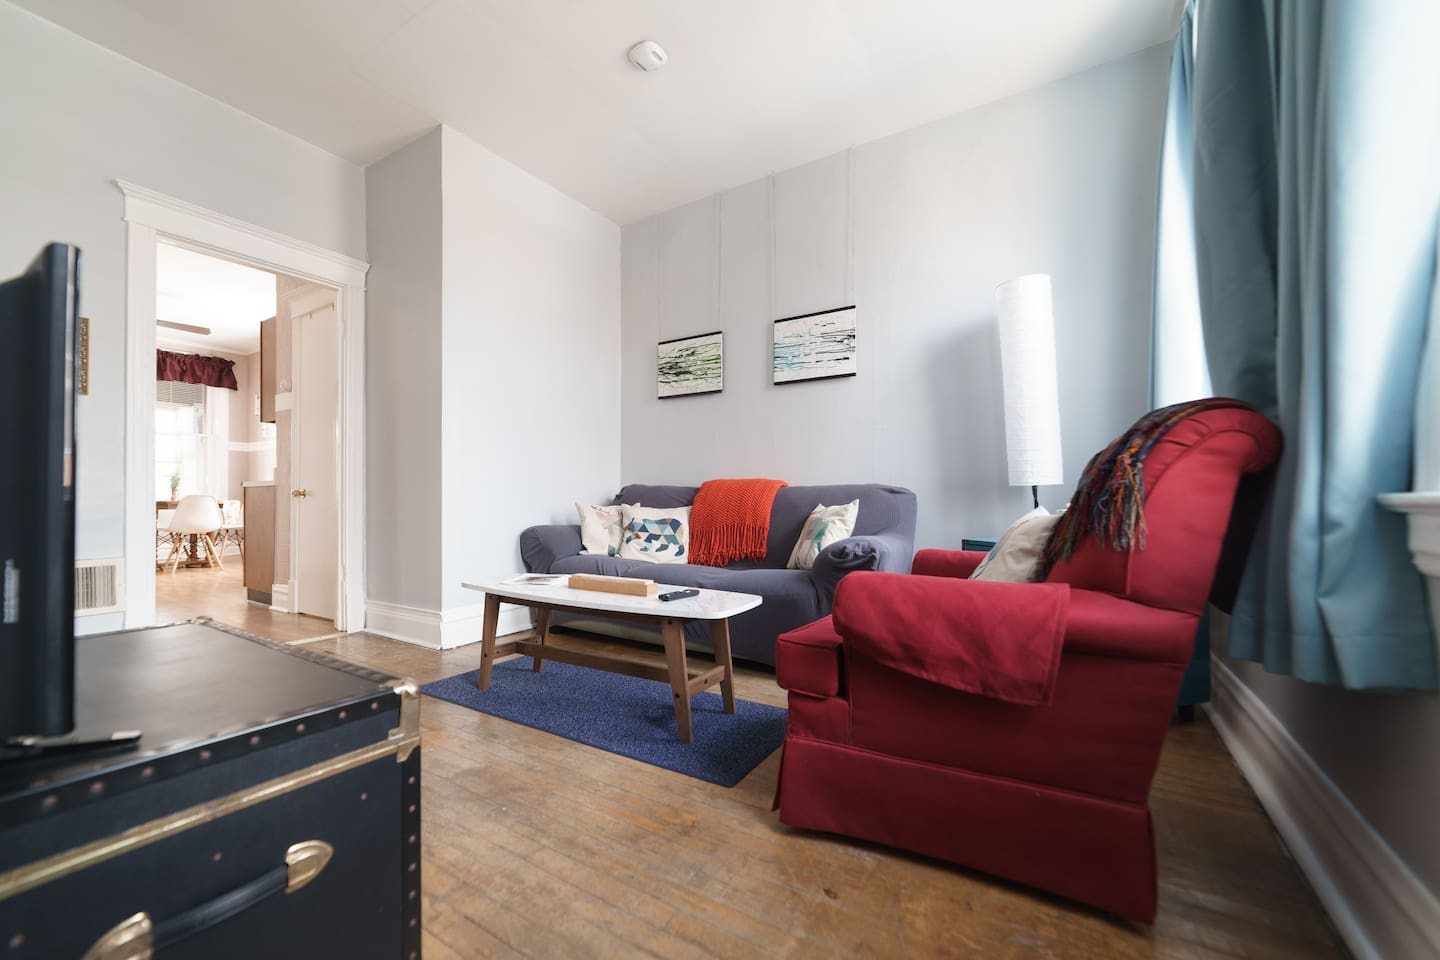 Living room as you enter the AirBnB